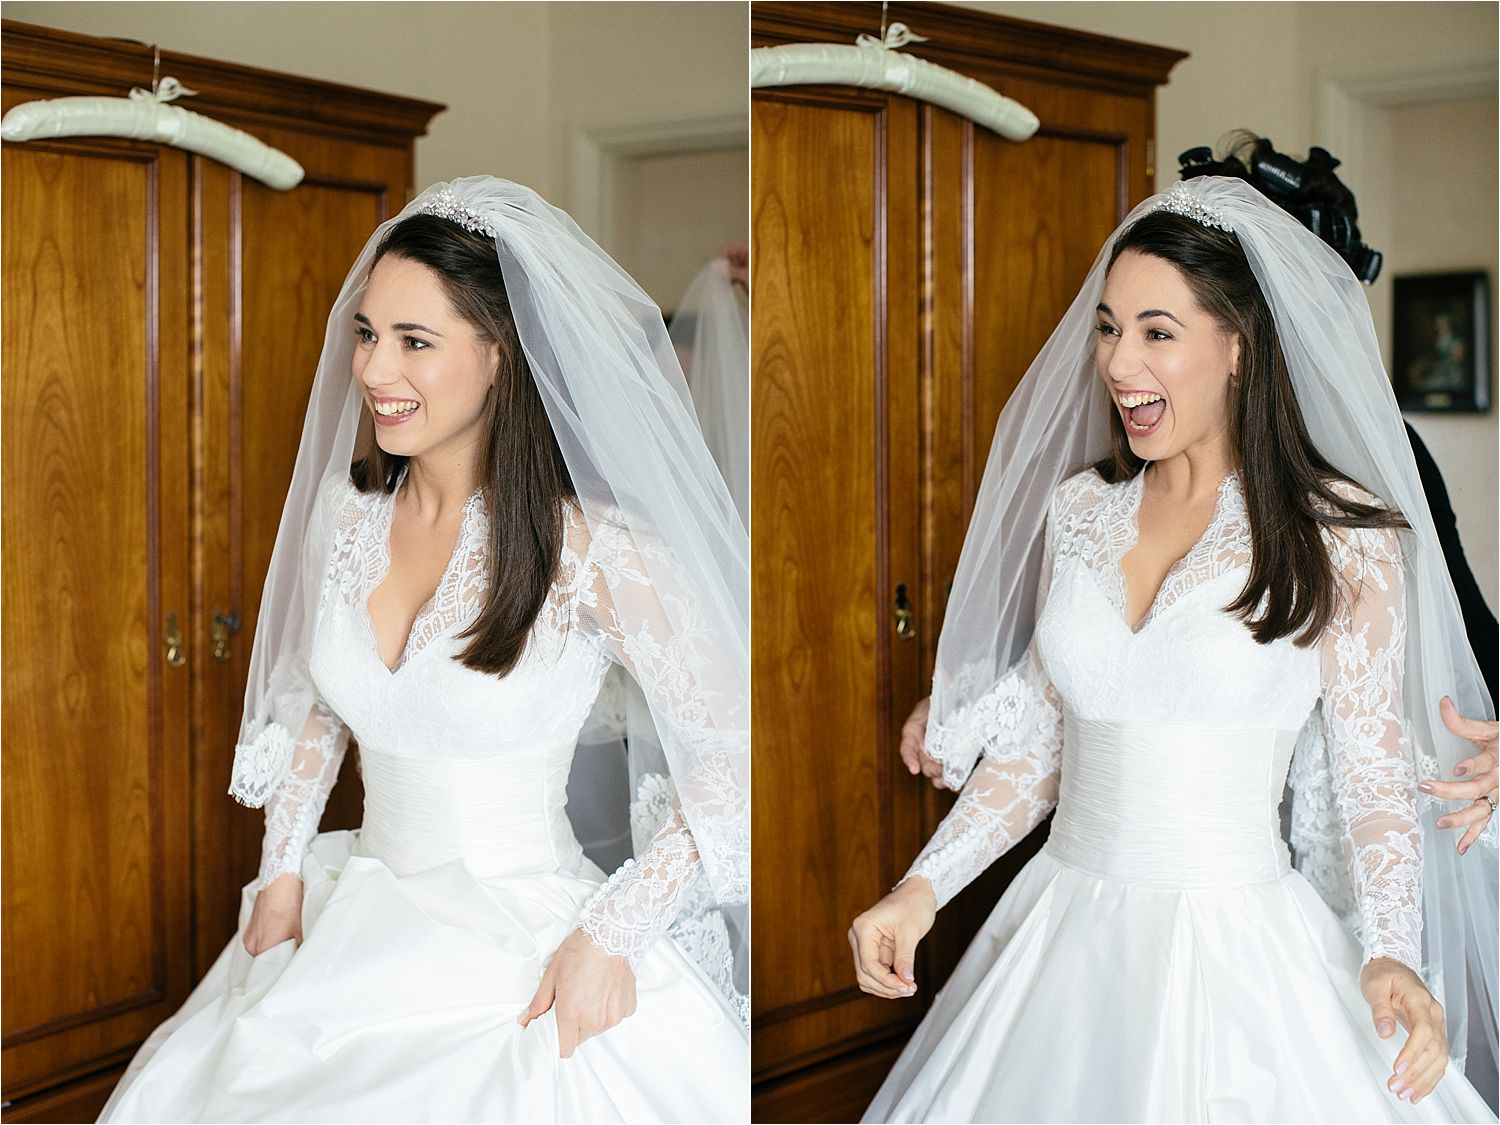 The beautiful bride and her reaction to her reflection as she is finally ready for her Cheshire wedding